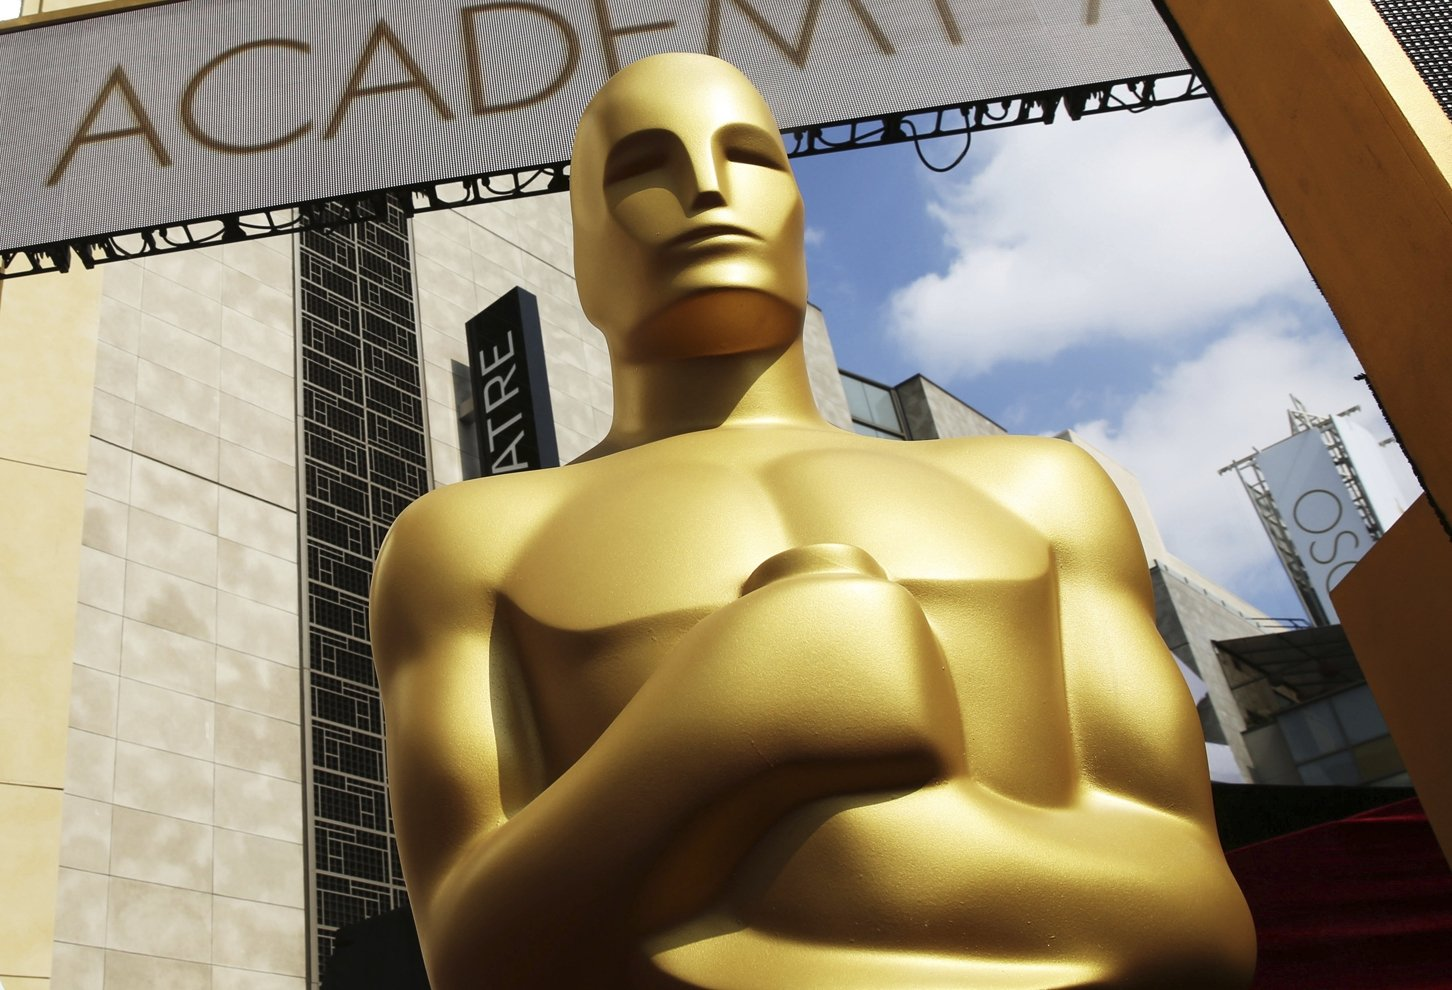 In this file photo, an Oscar statue appears outside the Dolby Theatre for the 87th Academy Awards in Los Angeles U.S., Feb. 21, 2015. (AP Photo)